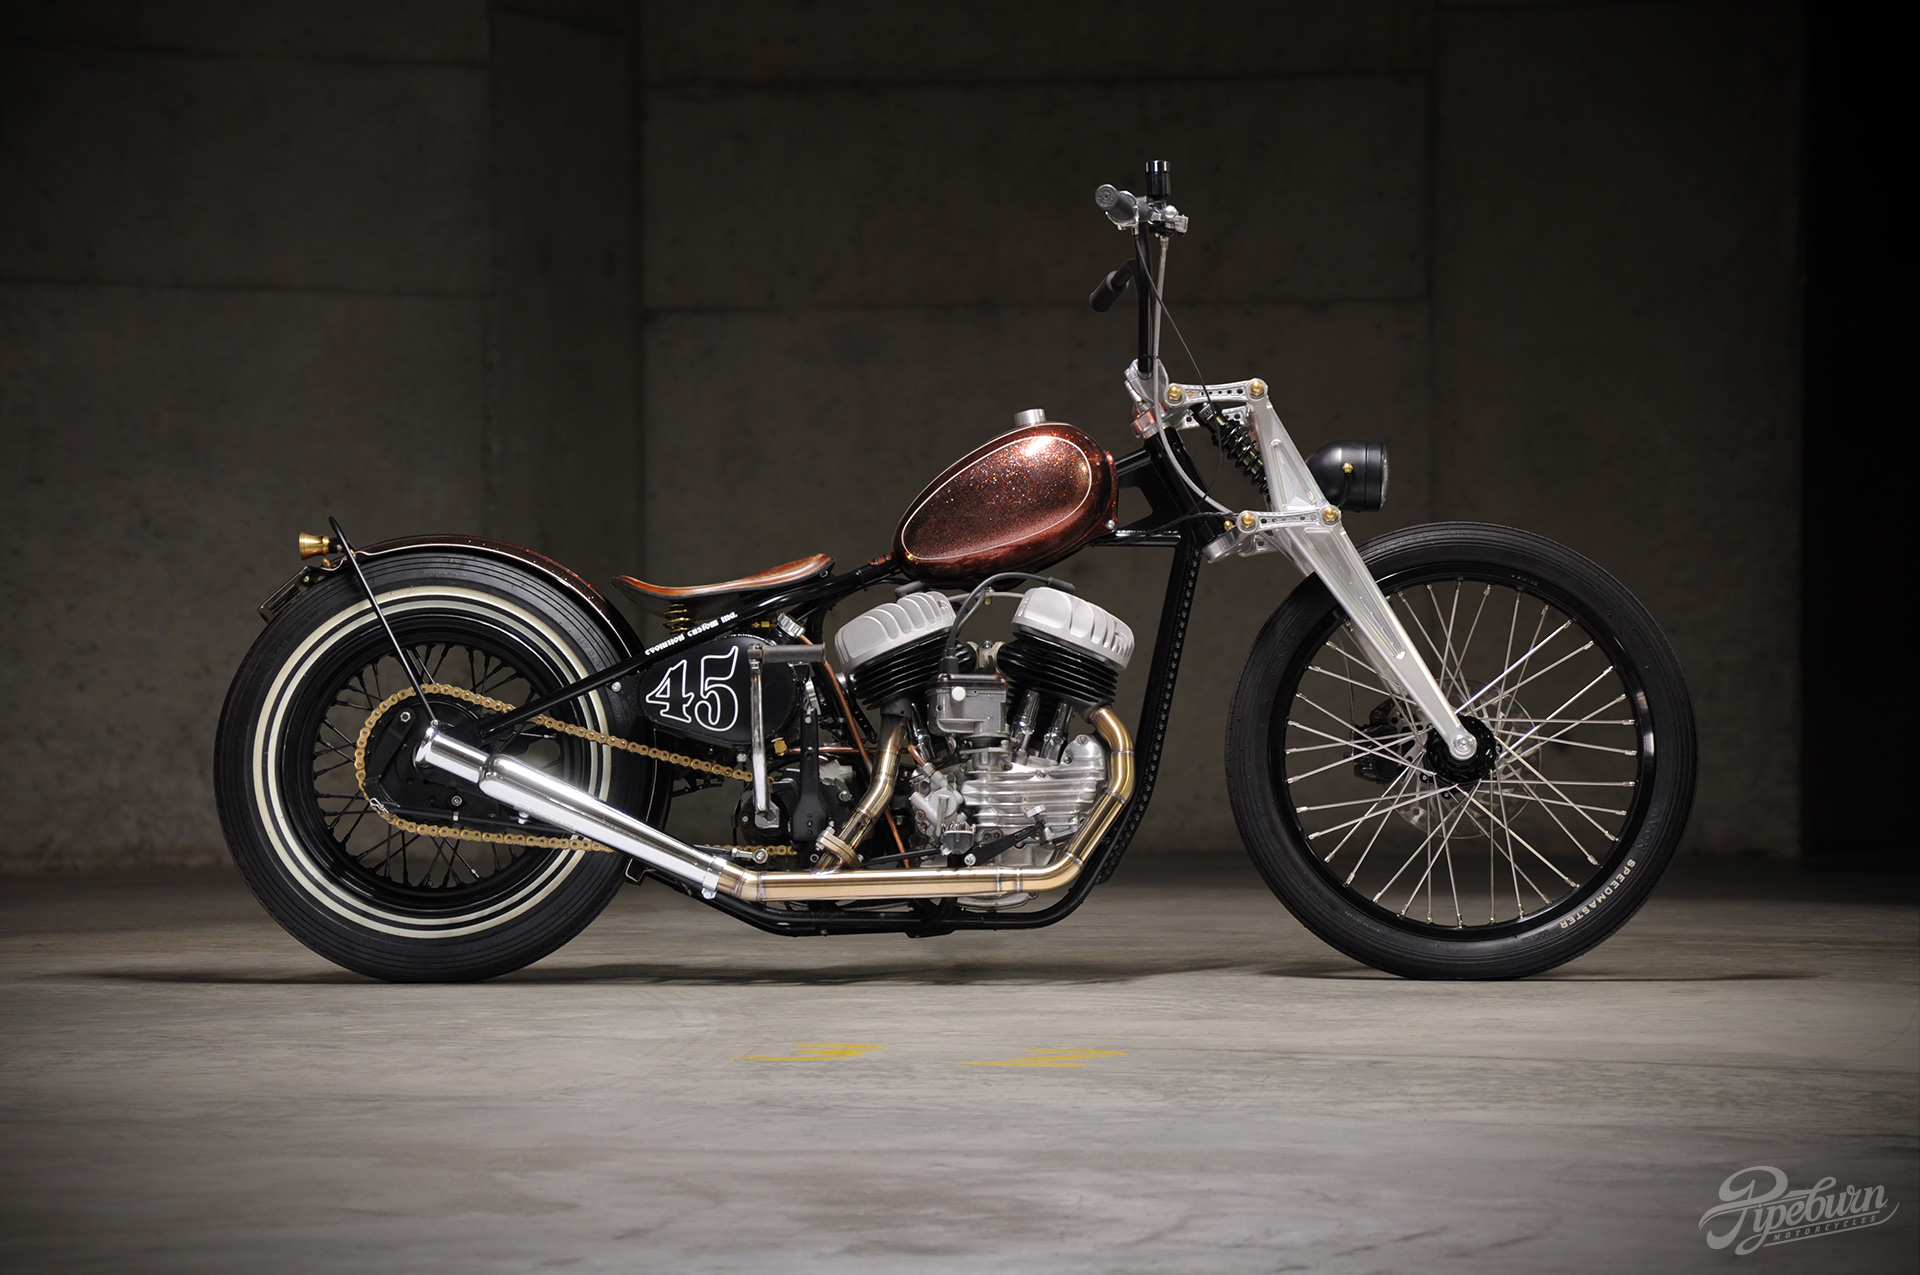 Harley Davidson Classic Wallpaper Harley Davidson Wallpaper High 1920x1275